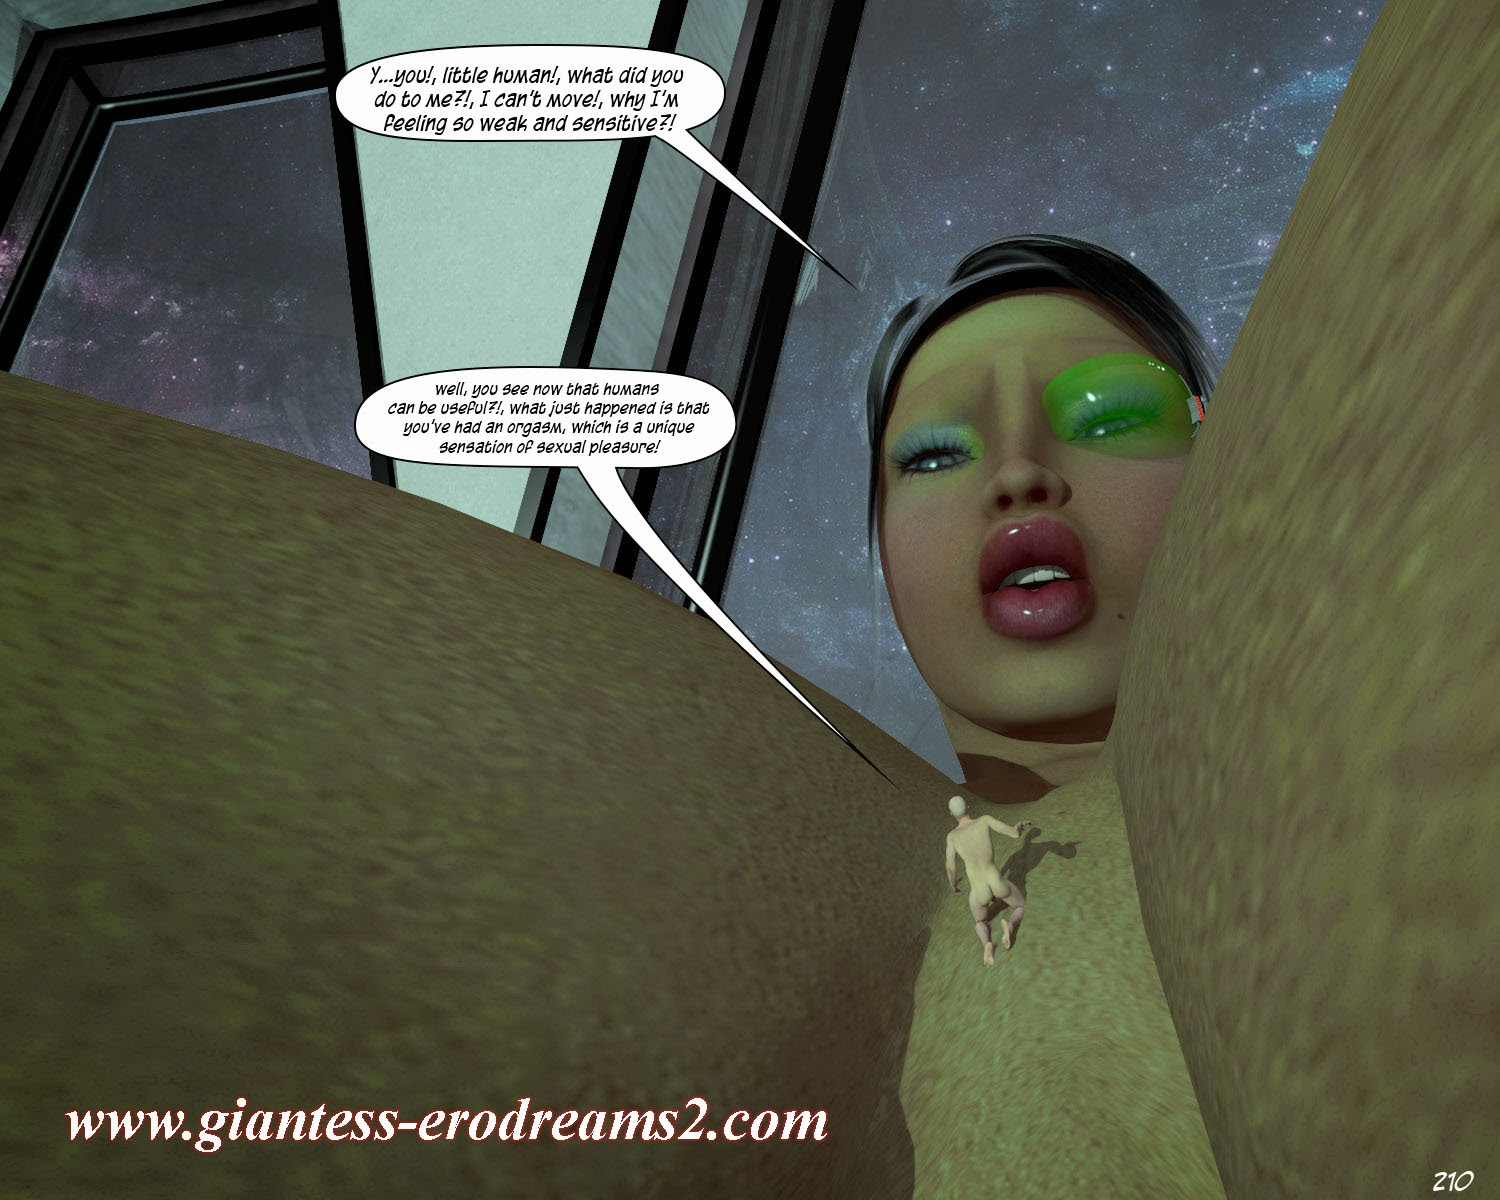 www.giantess-erodreams2.com